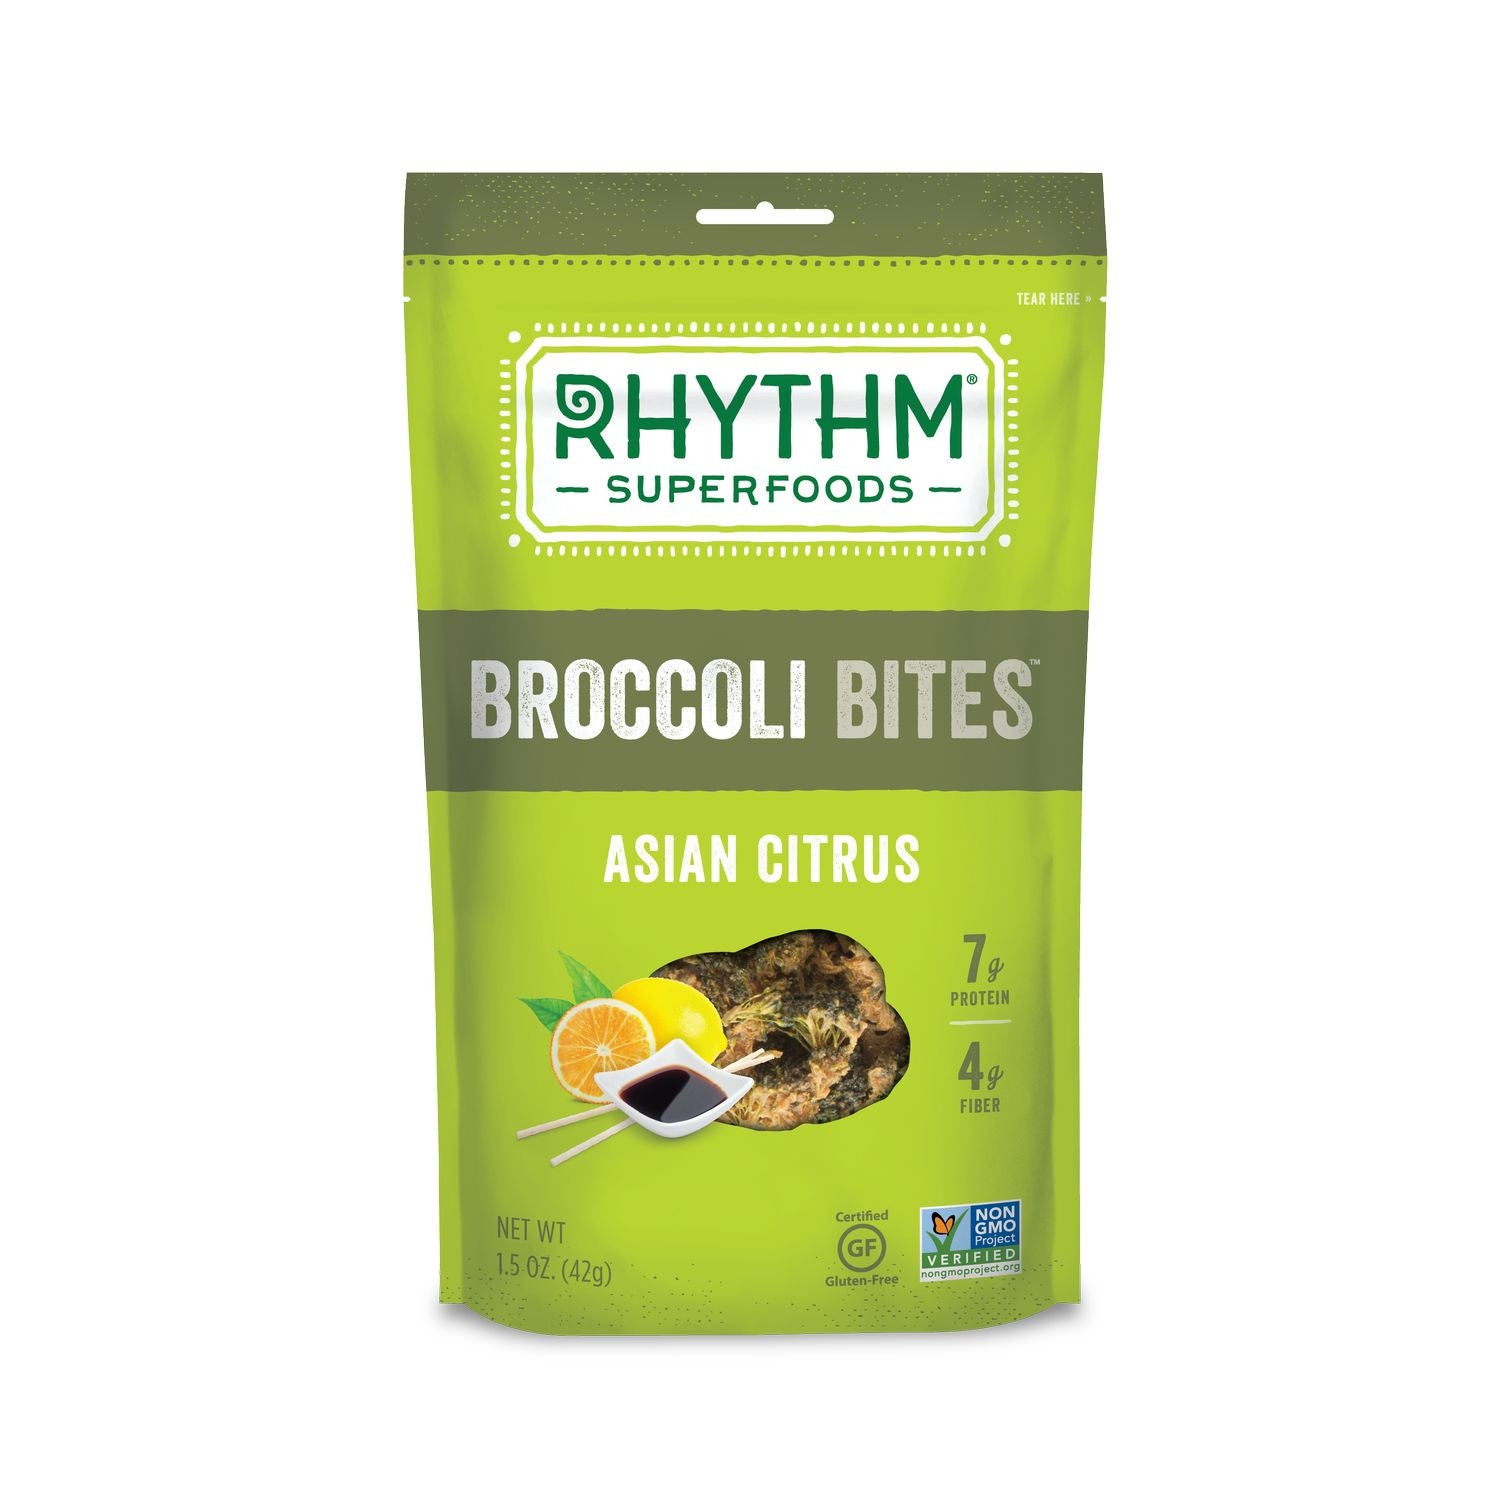 Rhythm Superfoods Asian Citrus Broccoli Bites, 1.5 Oz (Pack of 12)